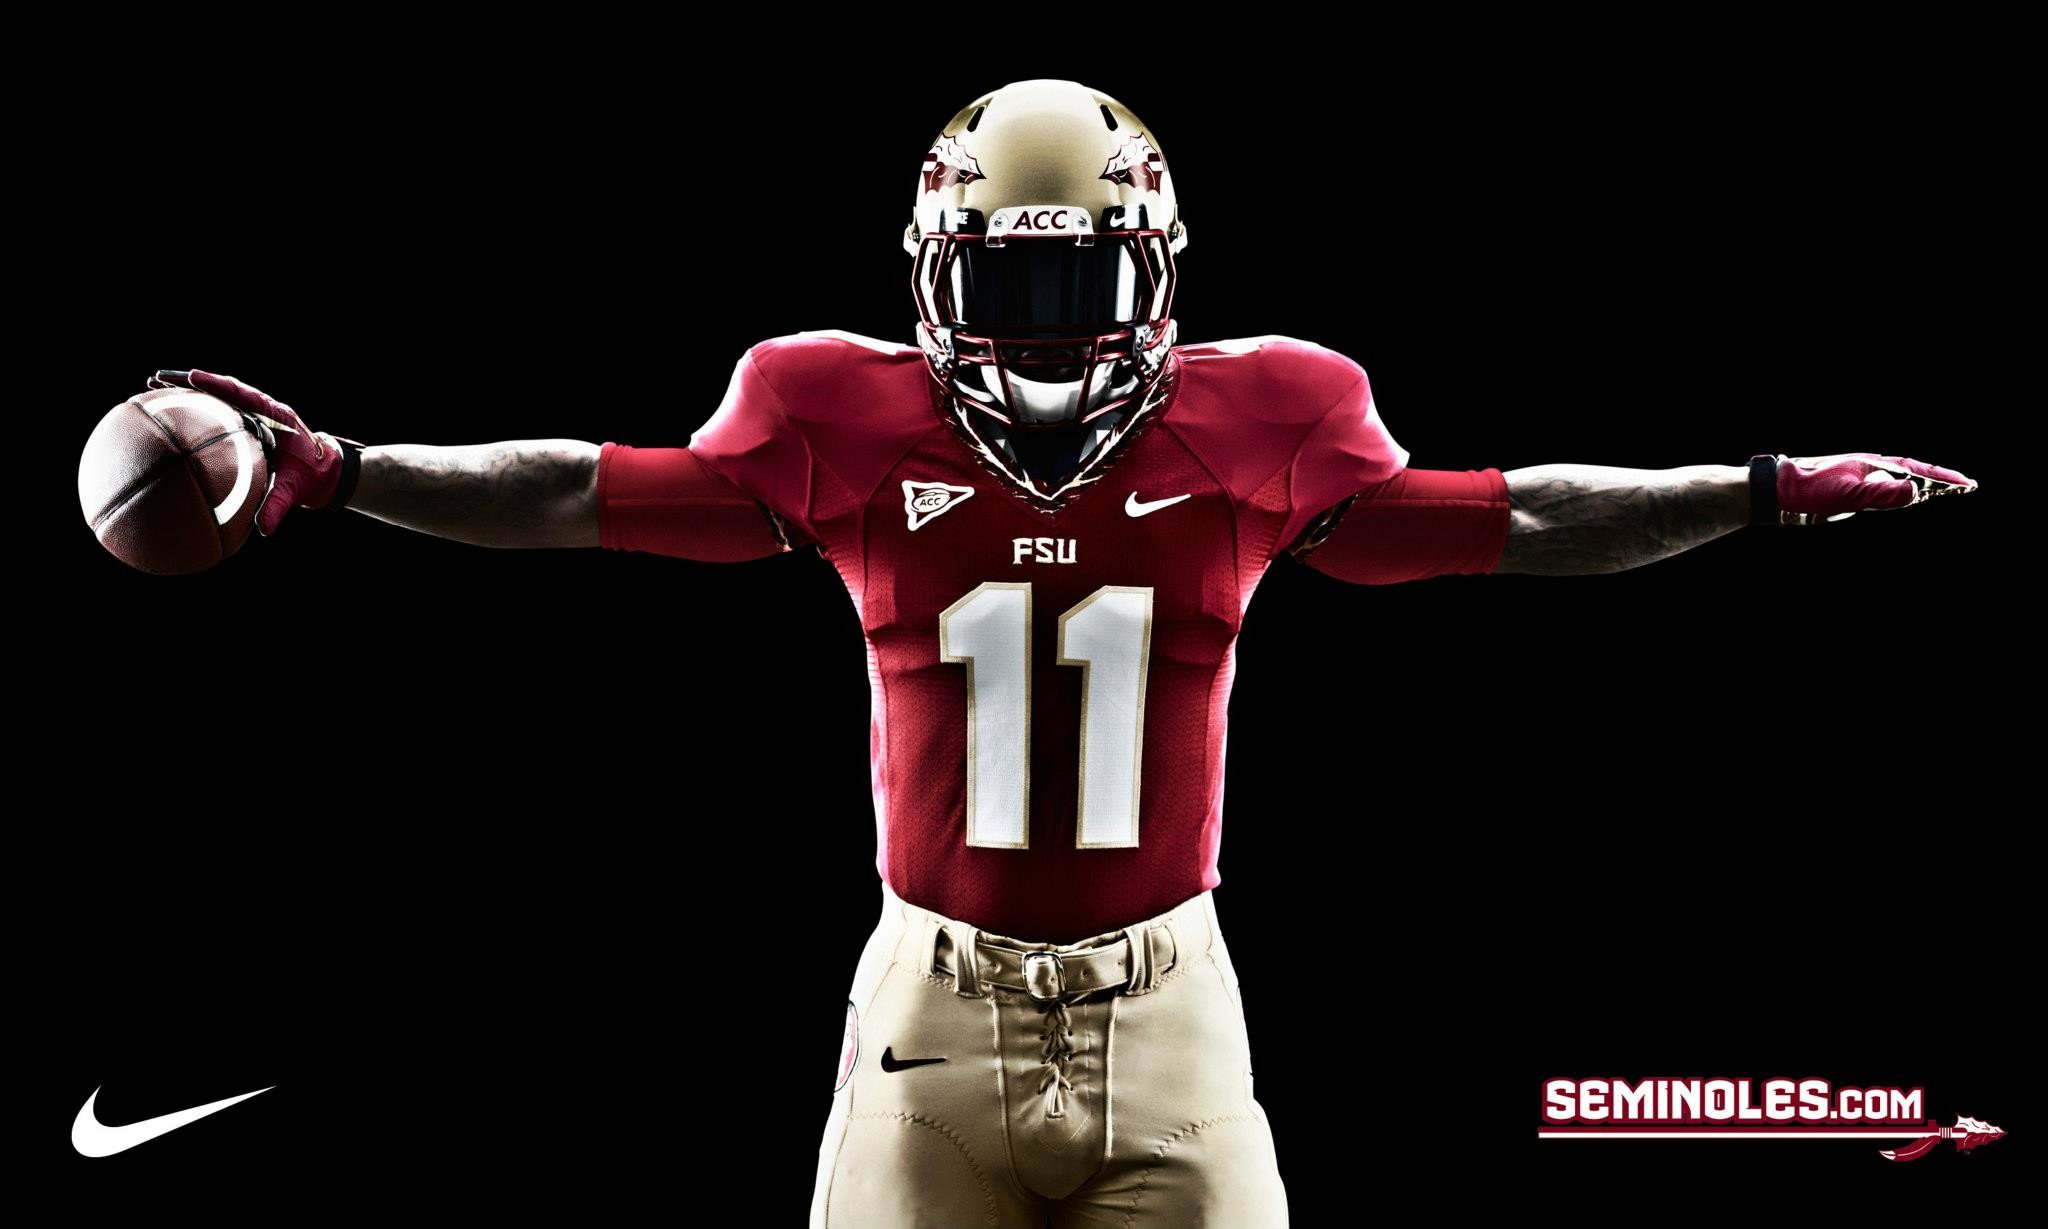 … Top College Football Wallpapers Hd HD Wallpapers 1080p Widescreen Free  Download 4K Images Beautiful HD Wallpapers